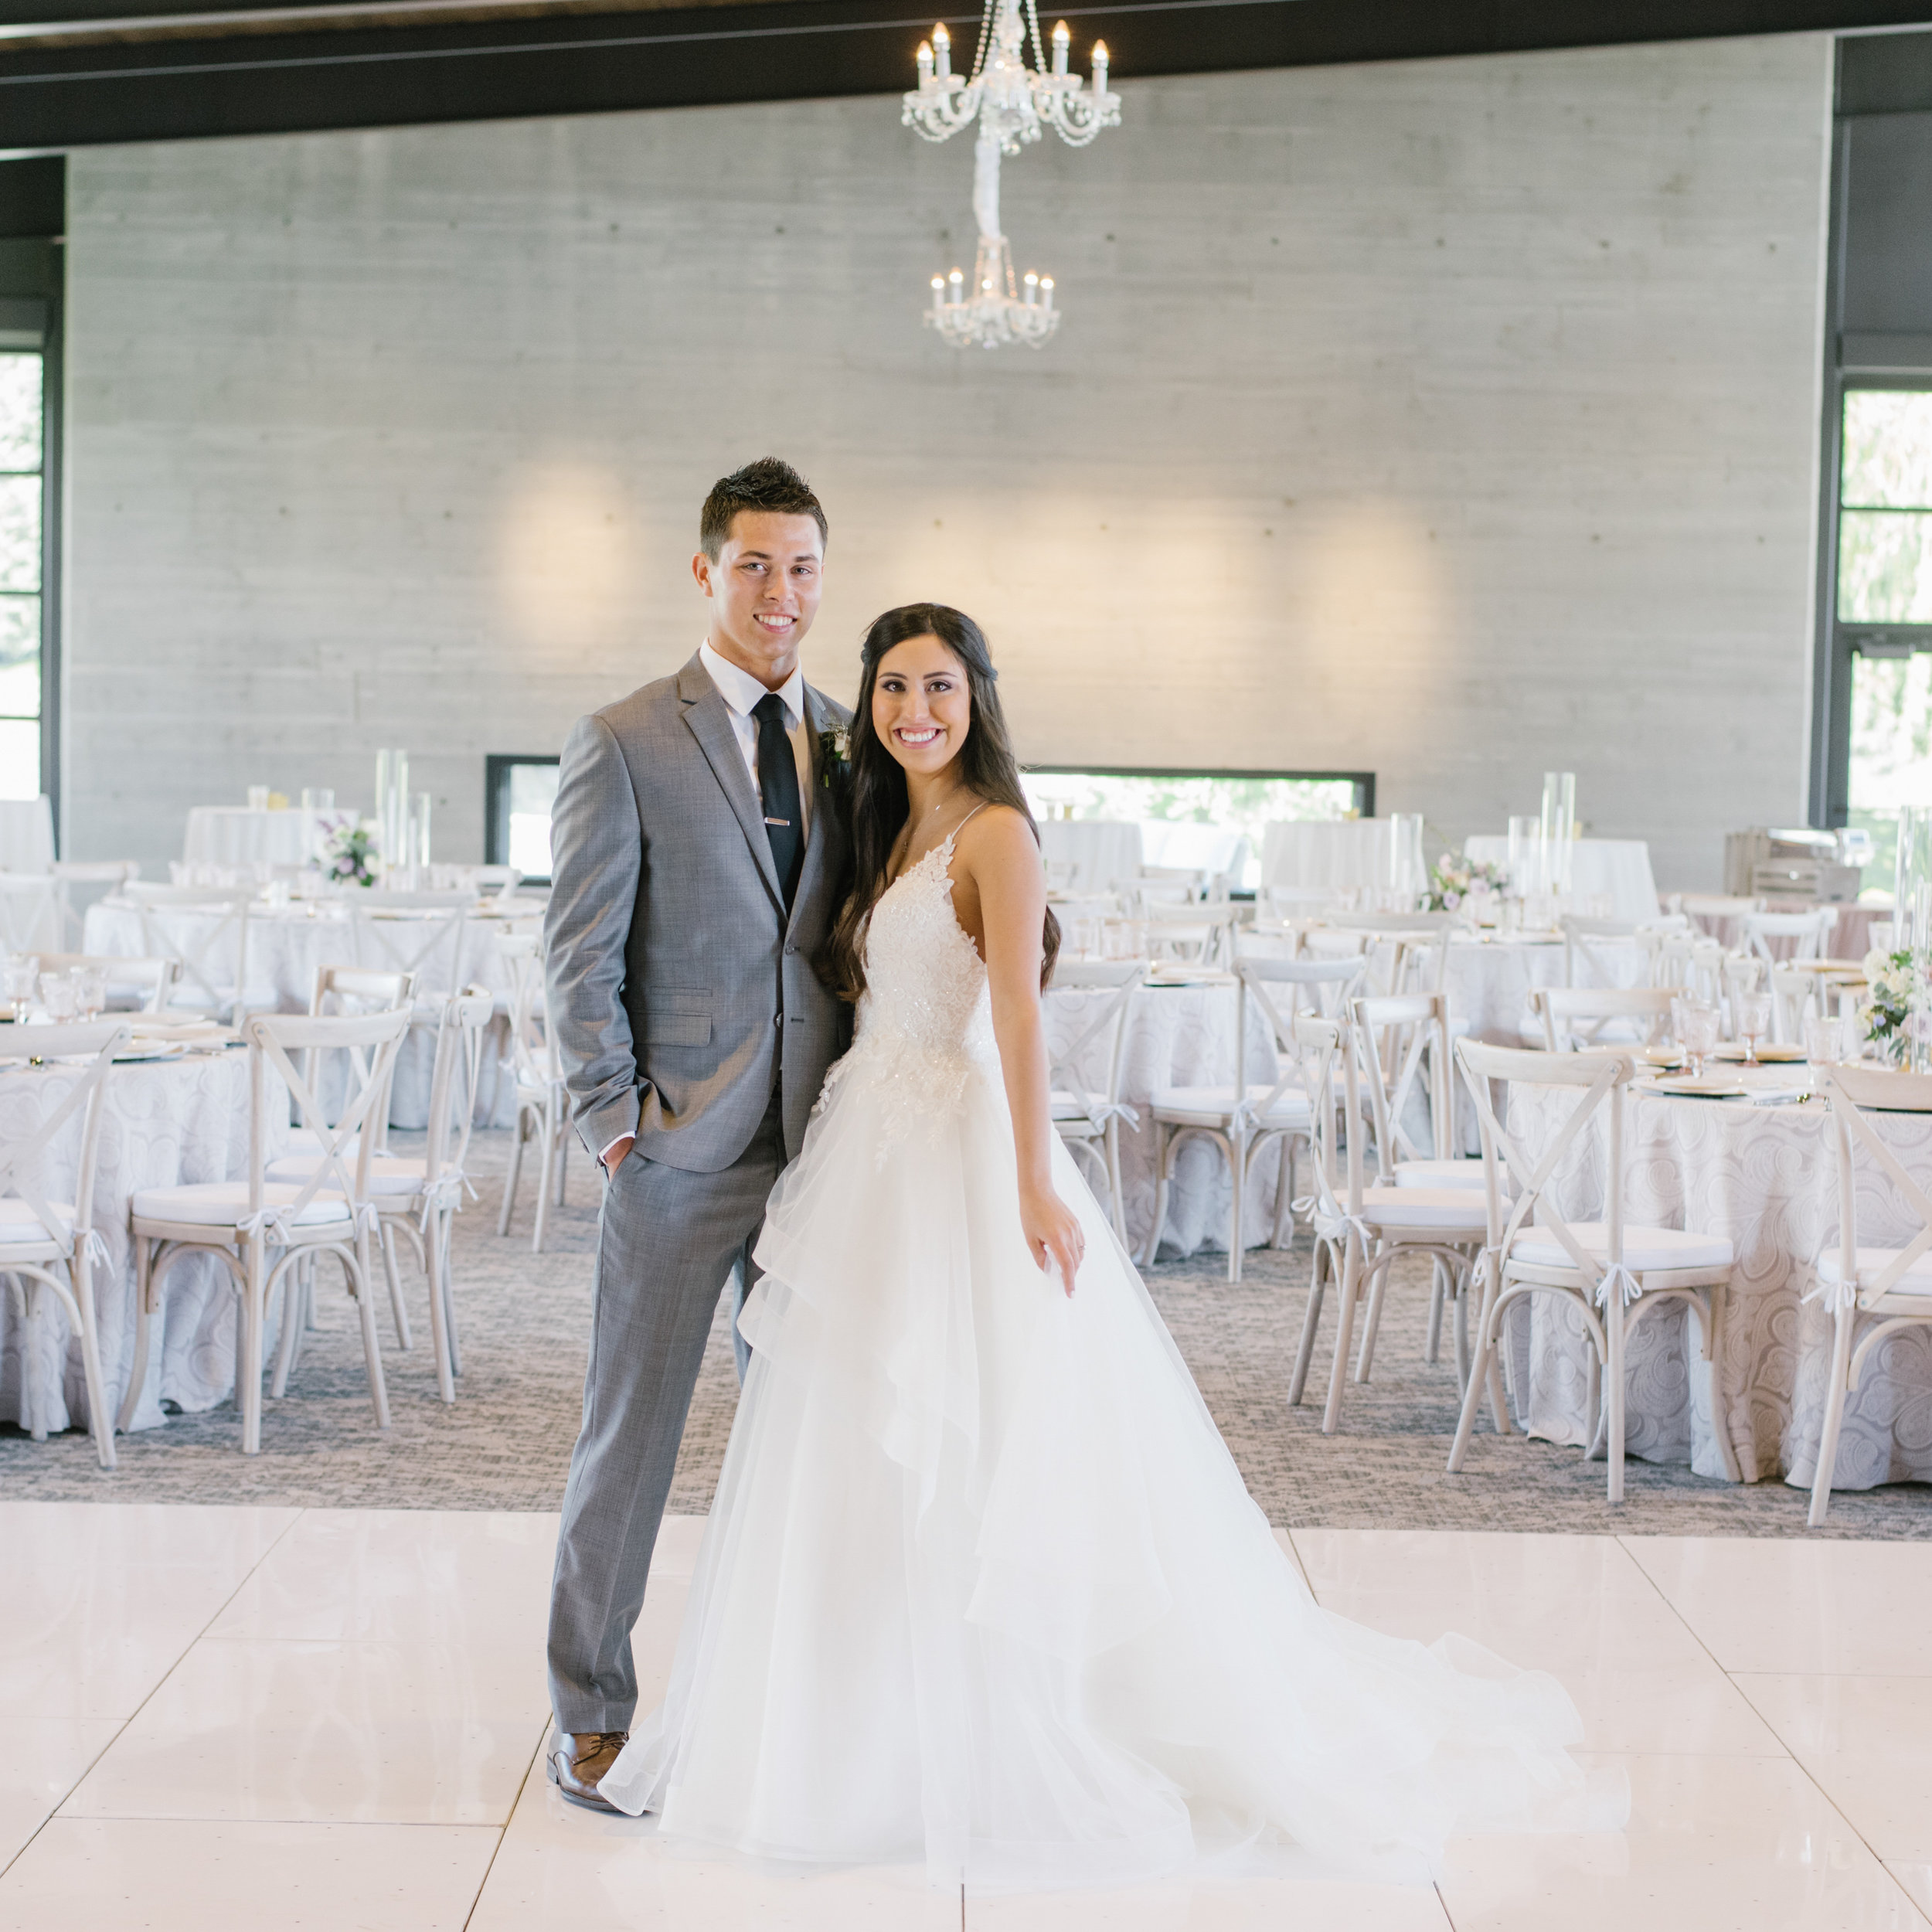 Alexis and Brady, Ira and Lucy Boise Wedding Planner, Marcie Meredith Photography